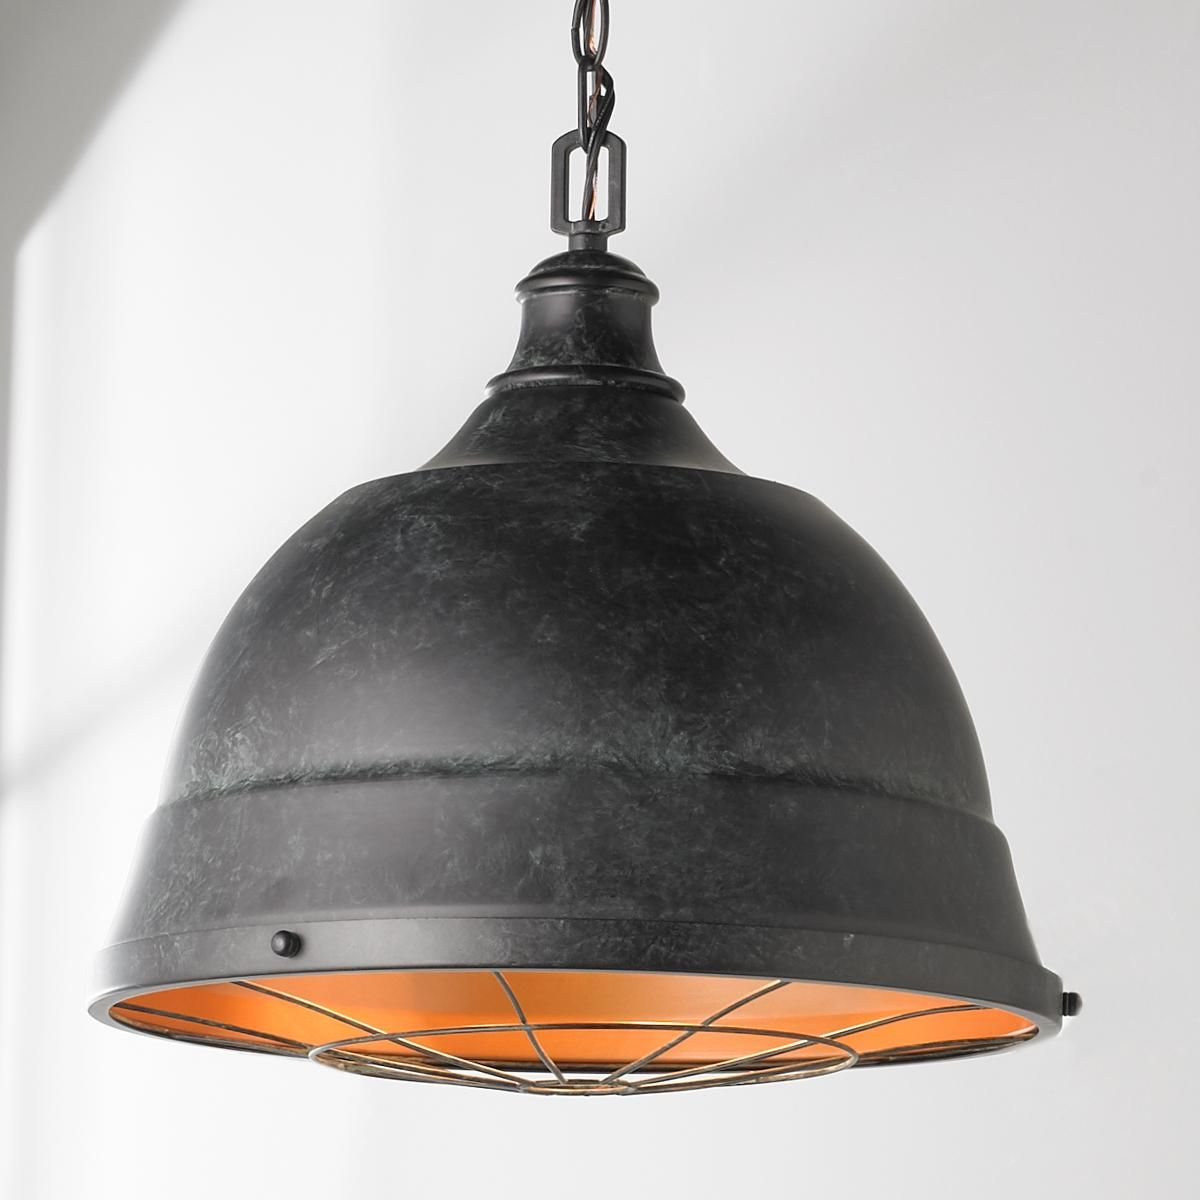 Weathered Industrial Caged Pendant 2 Light Industrial Pendant